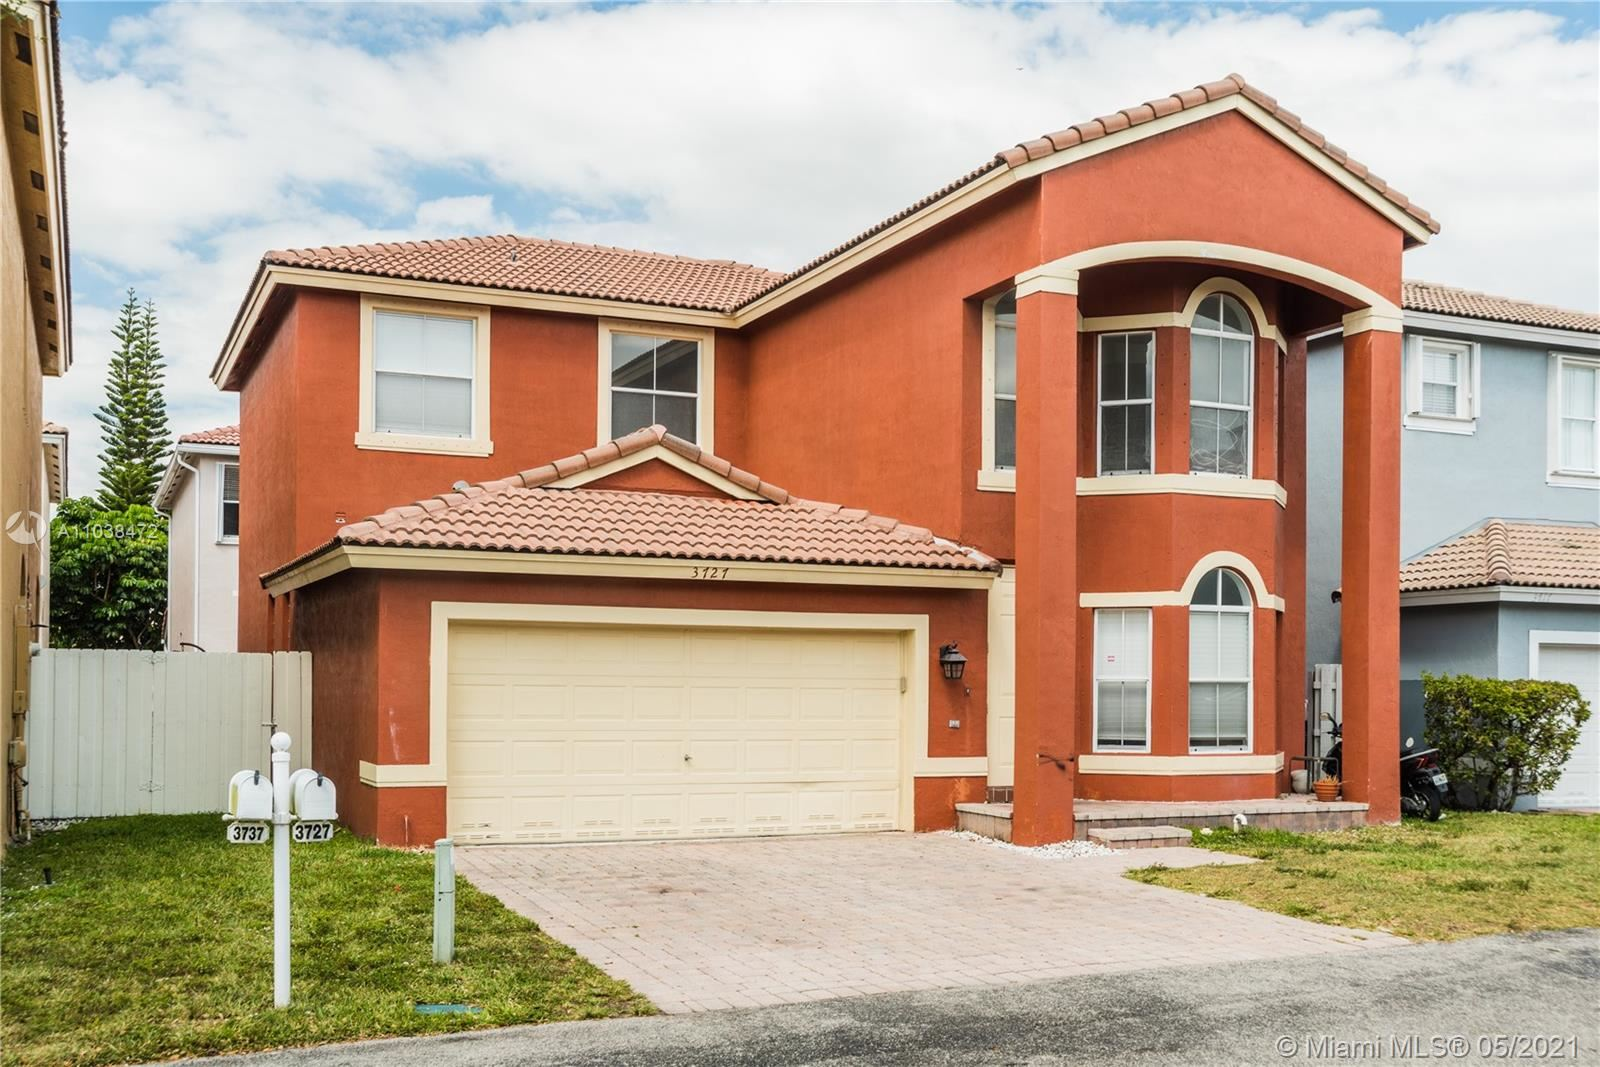 Photo of 3727 SW 50th Ct, Hollywood, FL 33312 (MLS # A11038472)